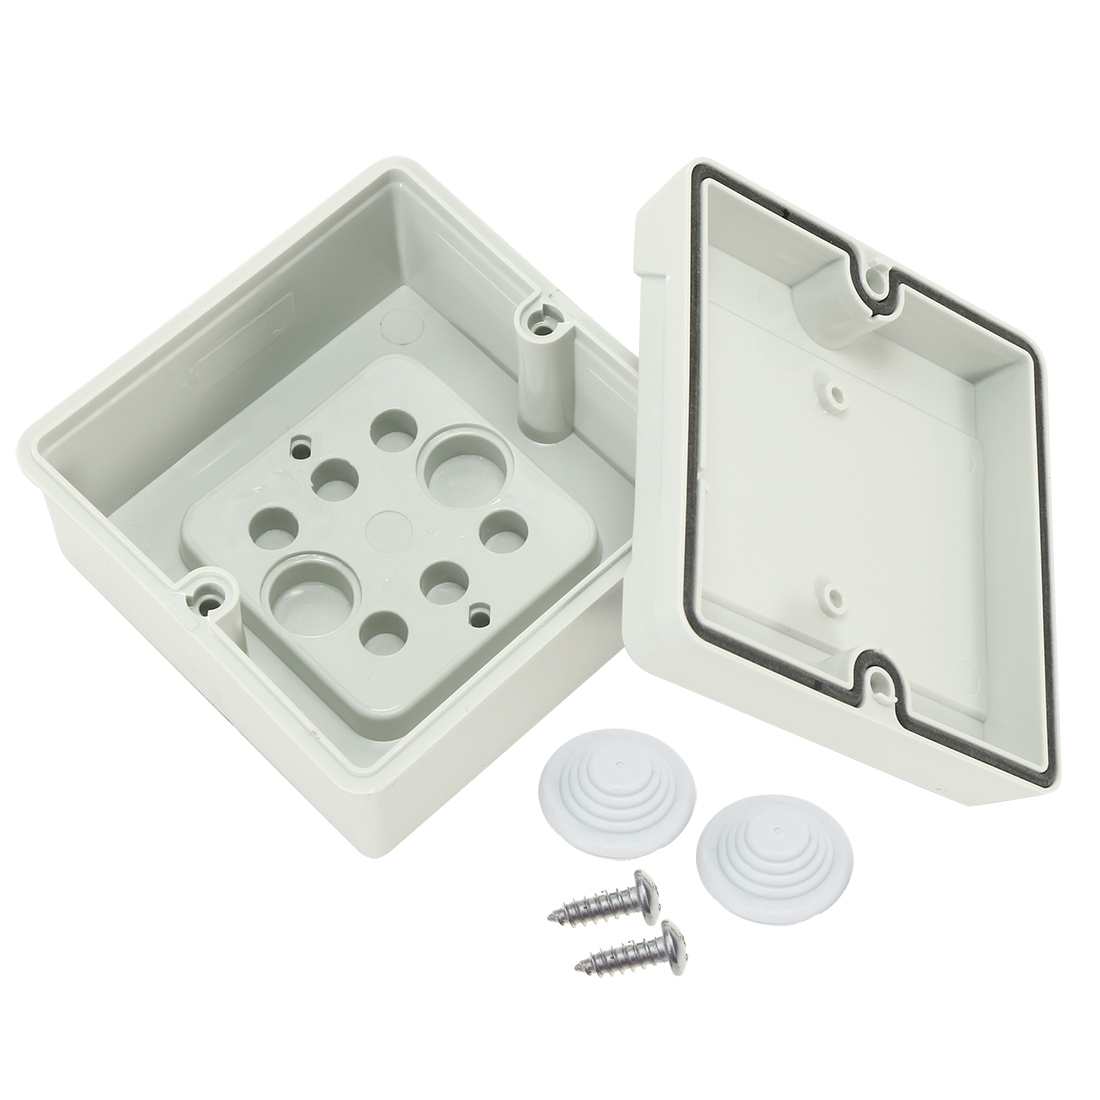 "3.5""x3.5""x2.1""(88mmx88mmx53mm) ABS Flame Retardant Dustproof IP66 Junction Box Universal Project Enclosure"